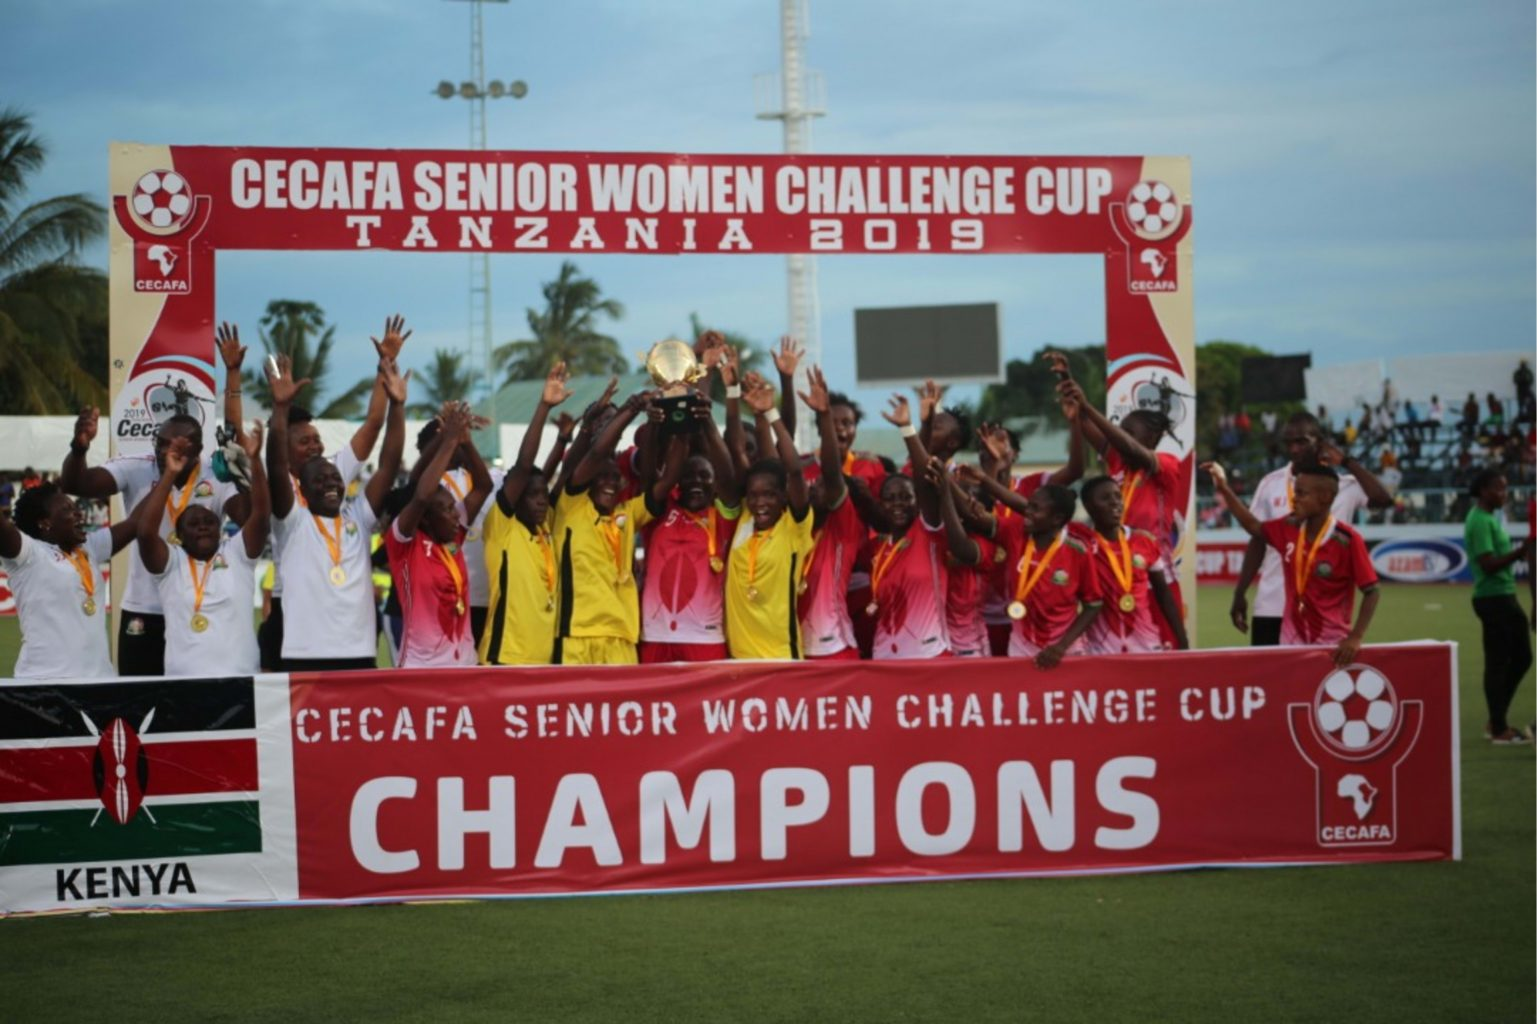 Kenya have defeated hosts Tanzania 2-0 to win the 2019 CECAFA Senior Women's Challenge Cup. Striker Jentrix Shikangwa came off the bench in the second half to score a brace to guide Kenya to victory. Both teams had gone into the final unbeaten and without conceding a goal. The defeat left Tanzanian fans disappointed after their side had won the previous two Cecafa Women's titles in 2016 and 2018. Earlier Uganda beat Burundi 2-0 to win the third-place play-off thank to goals from substitutes Shamira Nalujja and Amina Nababi. Kenya's Shikangwa won the top scorers' award with 10 goals, while the Golden Glove Award went to Kenyan goalkeeper Annedy Kundu who did not concede a single goal in the whole tournament. Tanzania's Omary Mwanahamisi was voted Most Valuable Player and Tanzania bagged the Fair Play Award.